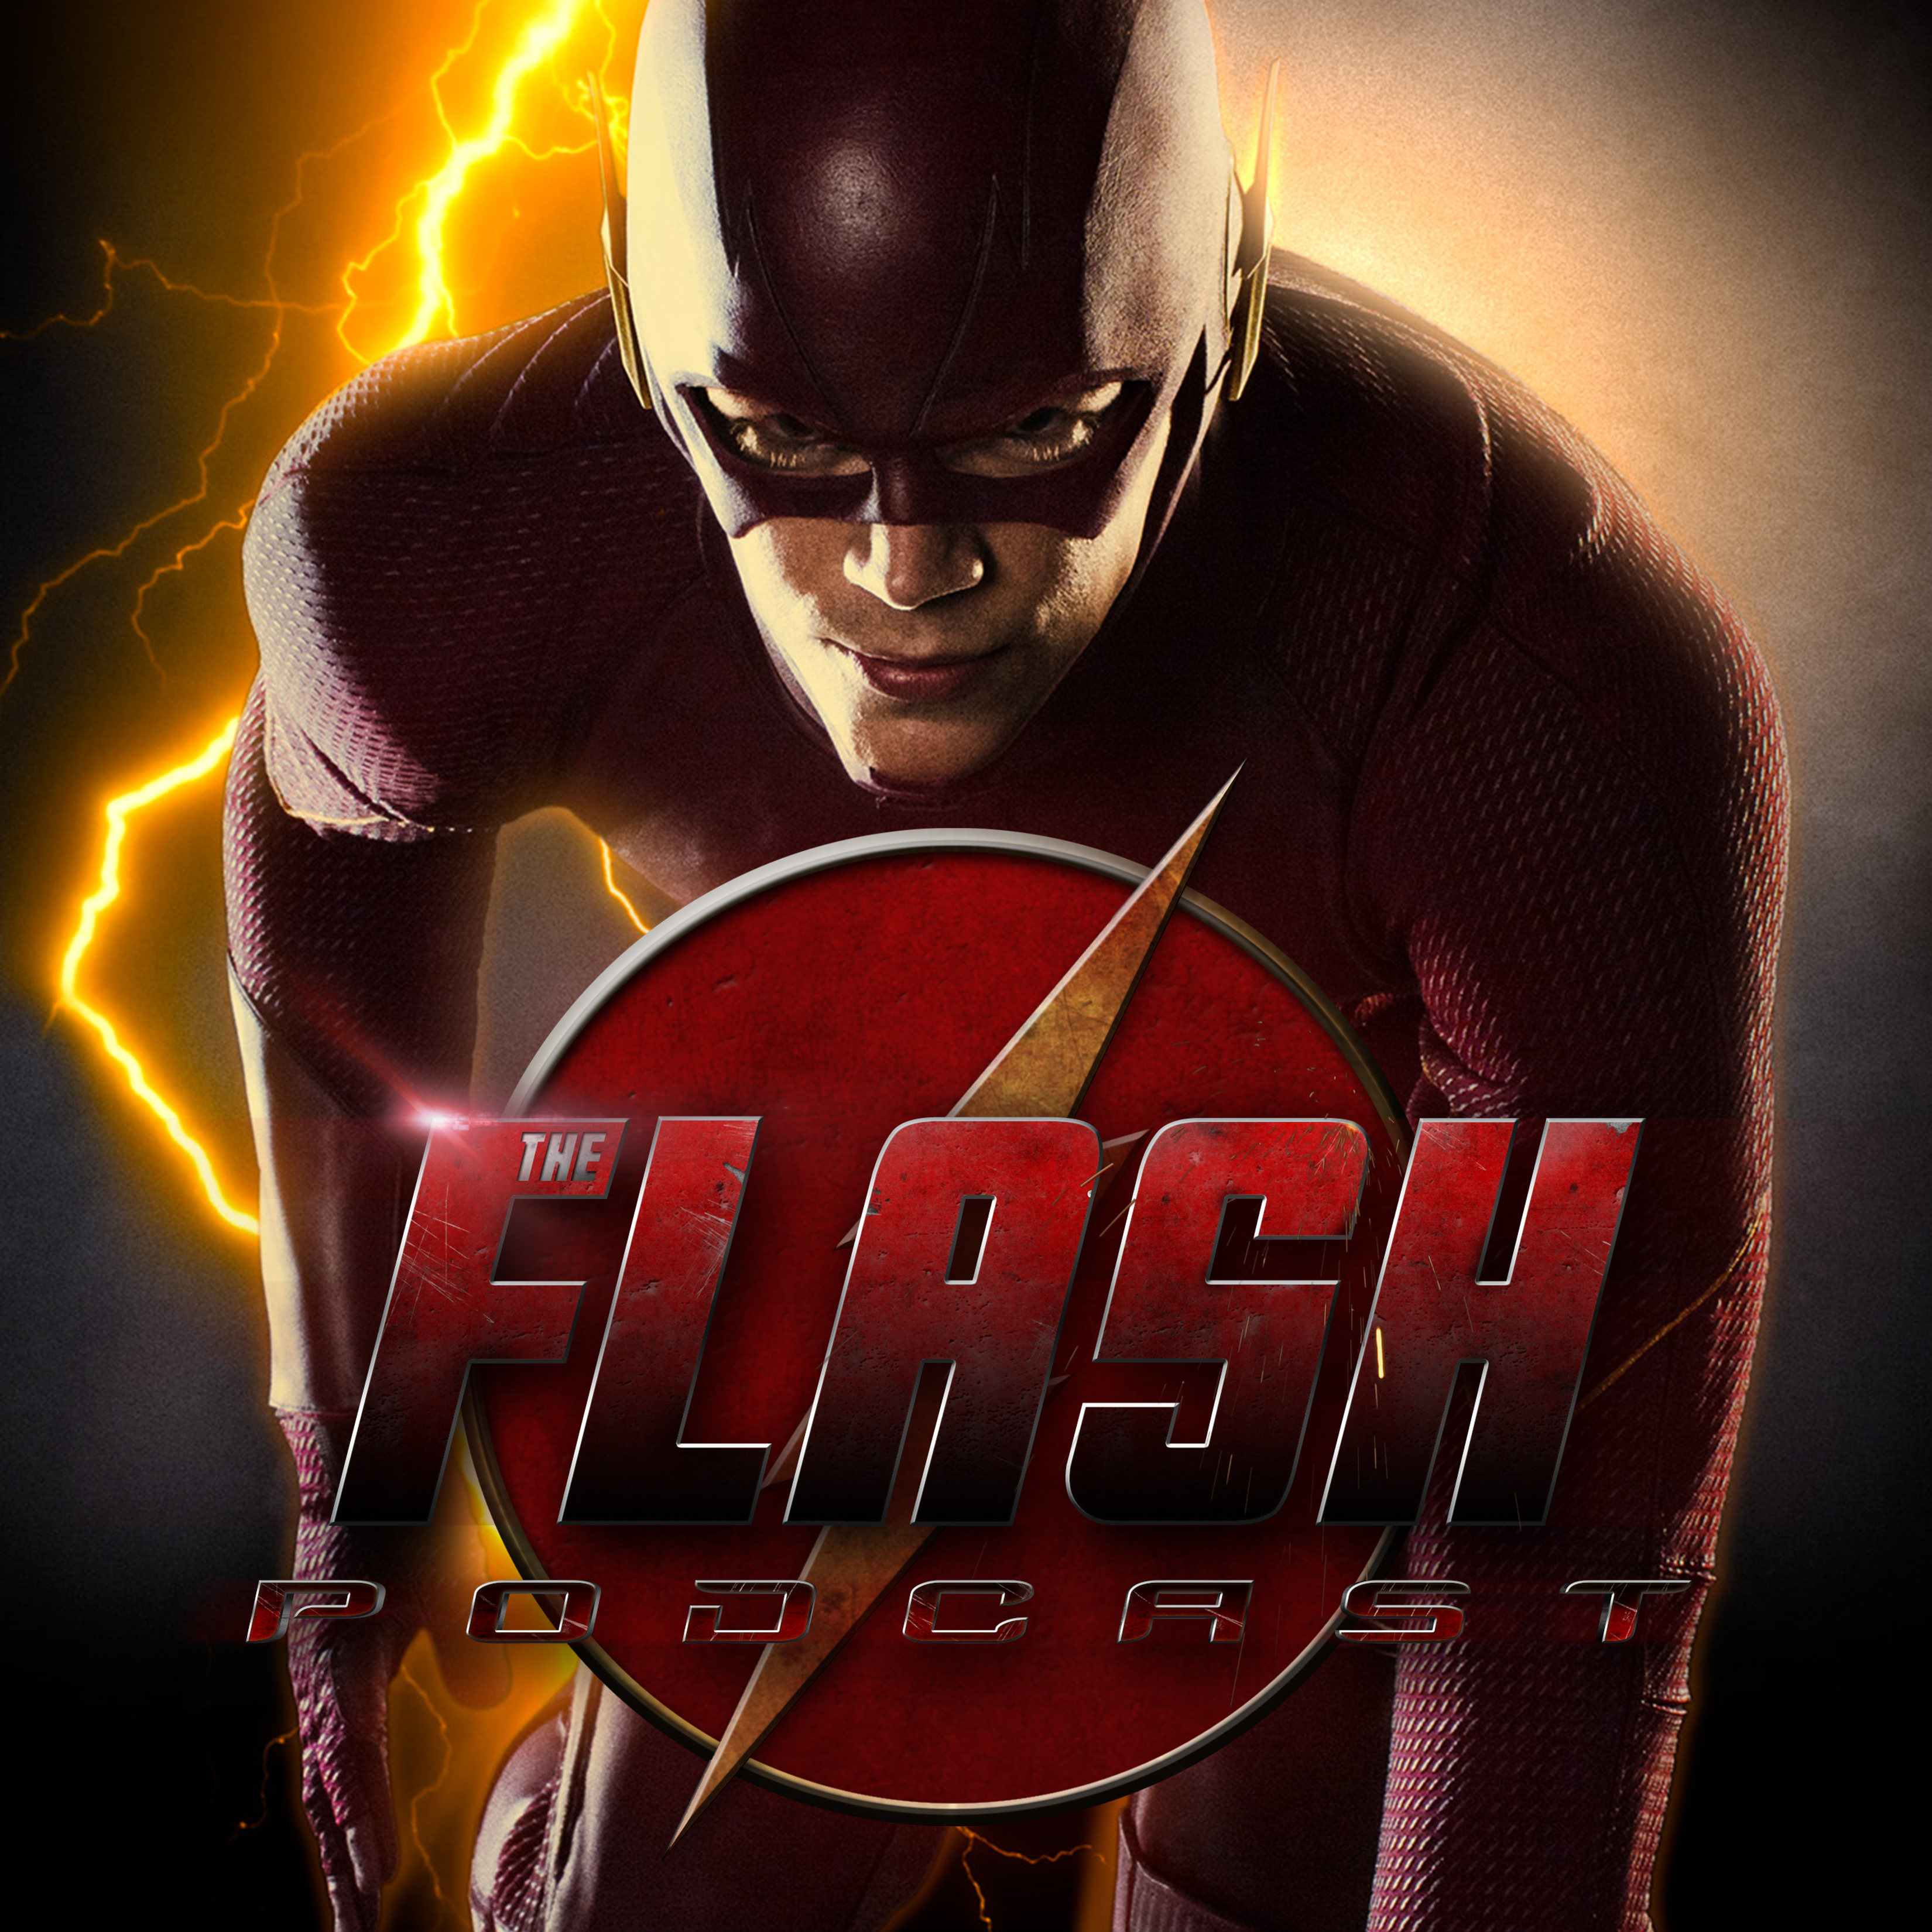 The Flash Podcast 09 - The Man in the Yellow Suit